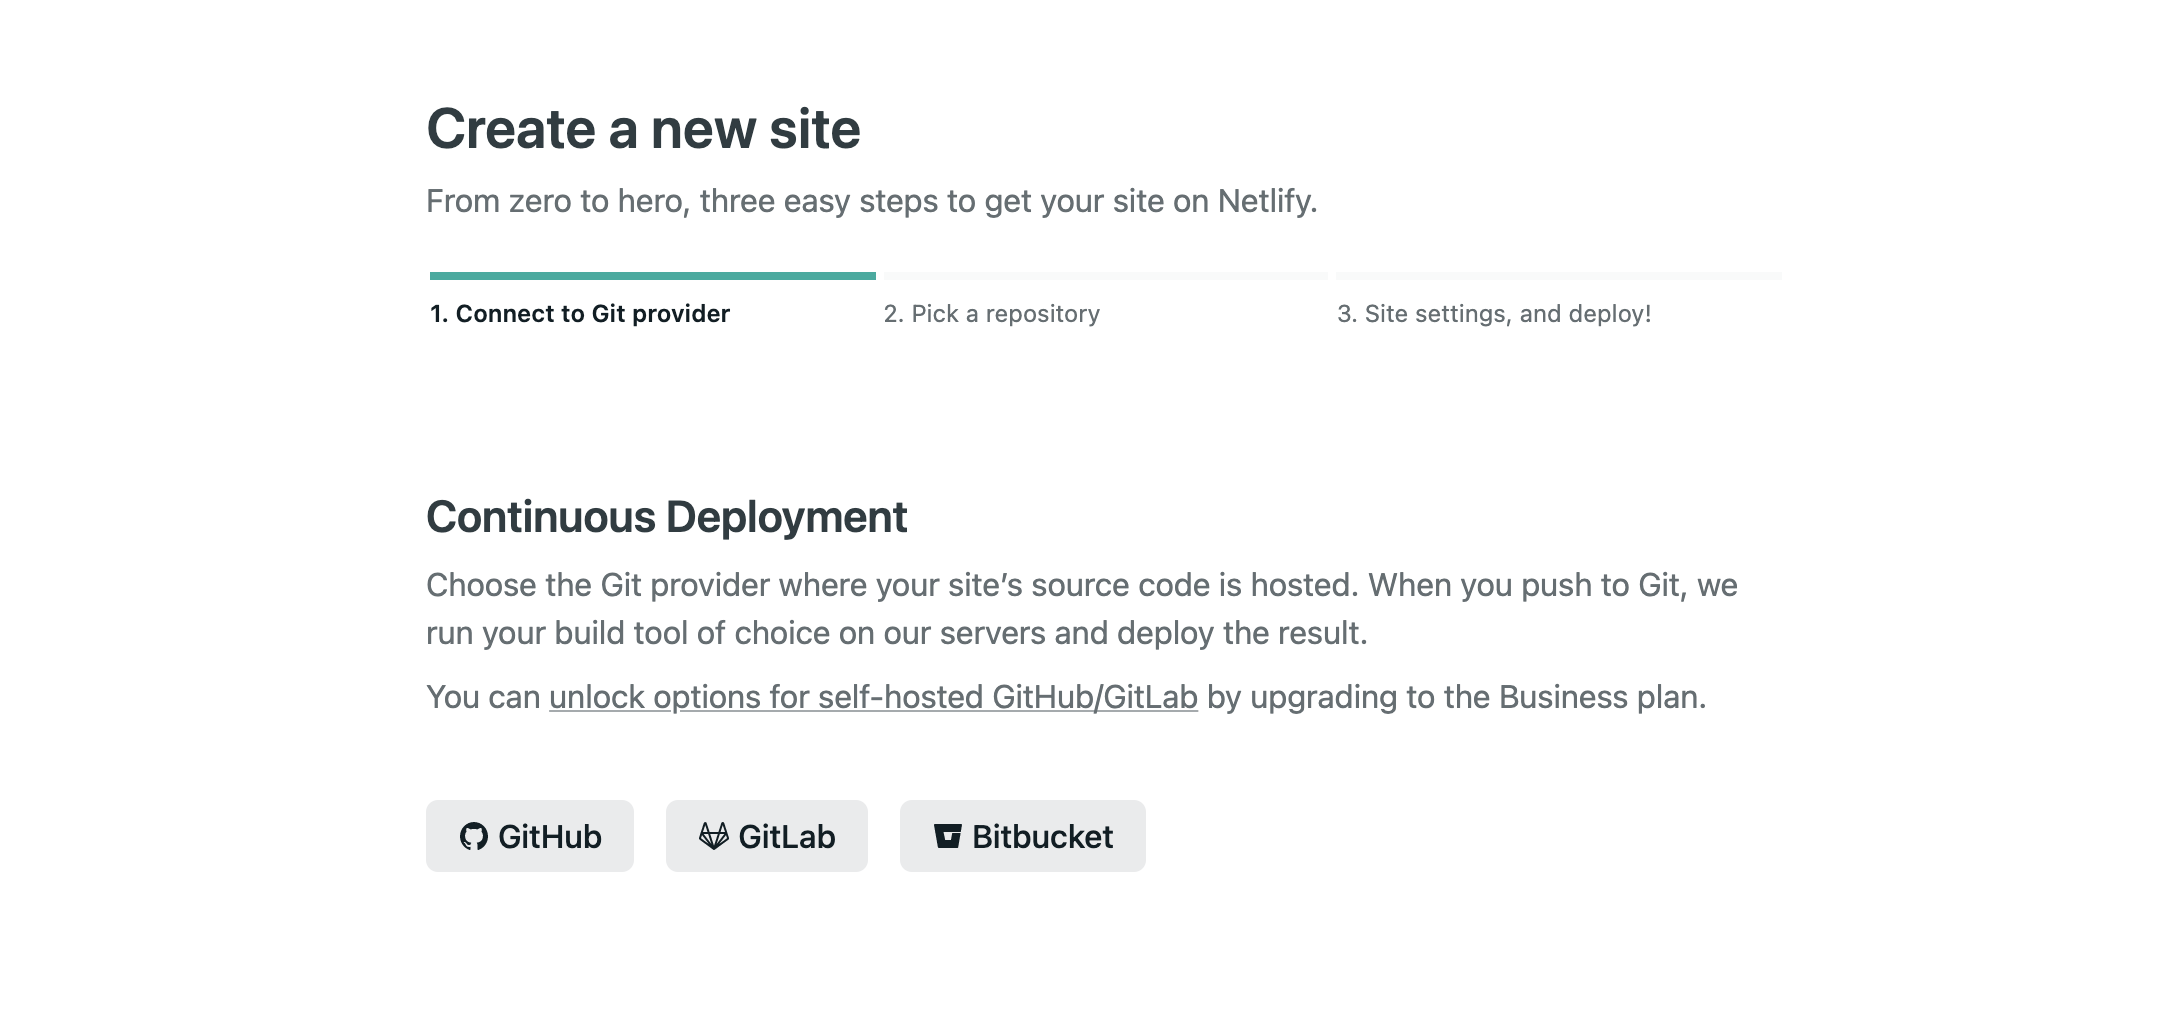 Create a new site From zero to hero, three easy steps to get your site on Netlify.  Connect to Git provider Pick a repository Site settings, and deploy! Continuous Deployment Choose the Git provider where your site's source code is hosted. When you push to Git, we run your build tool of choice on our servers and deploy the result.